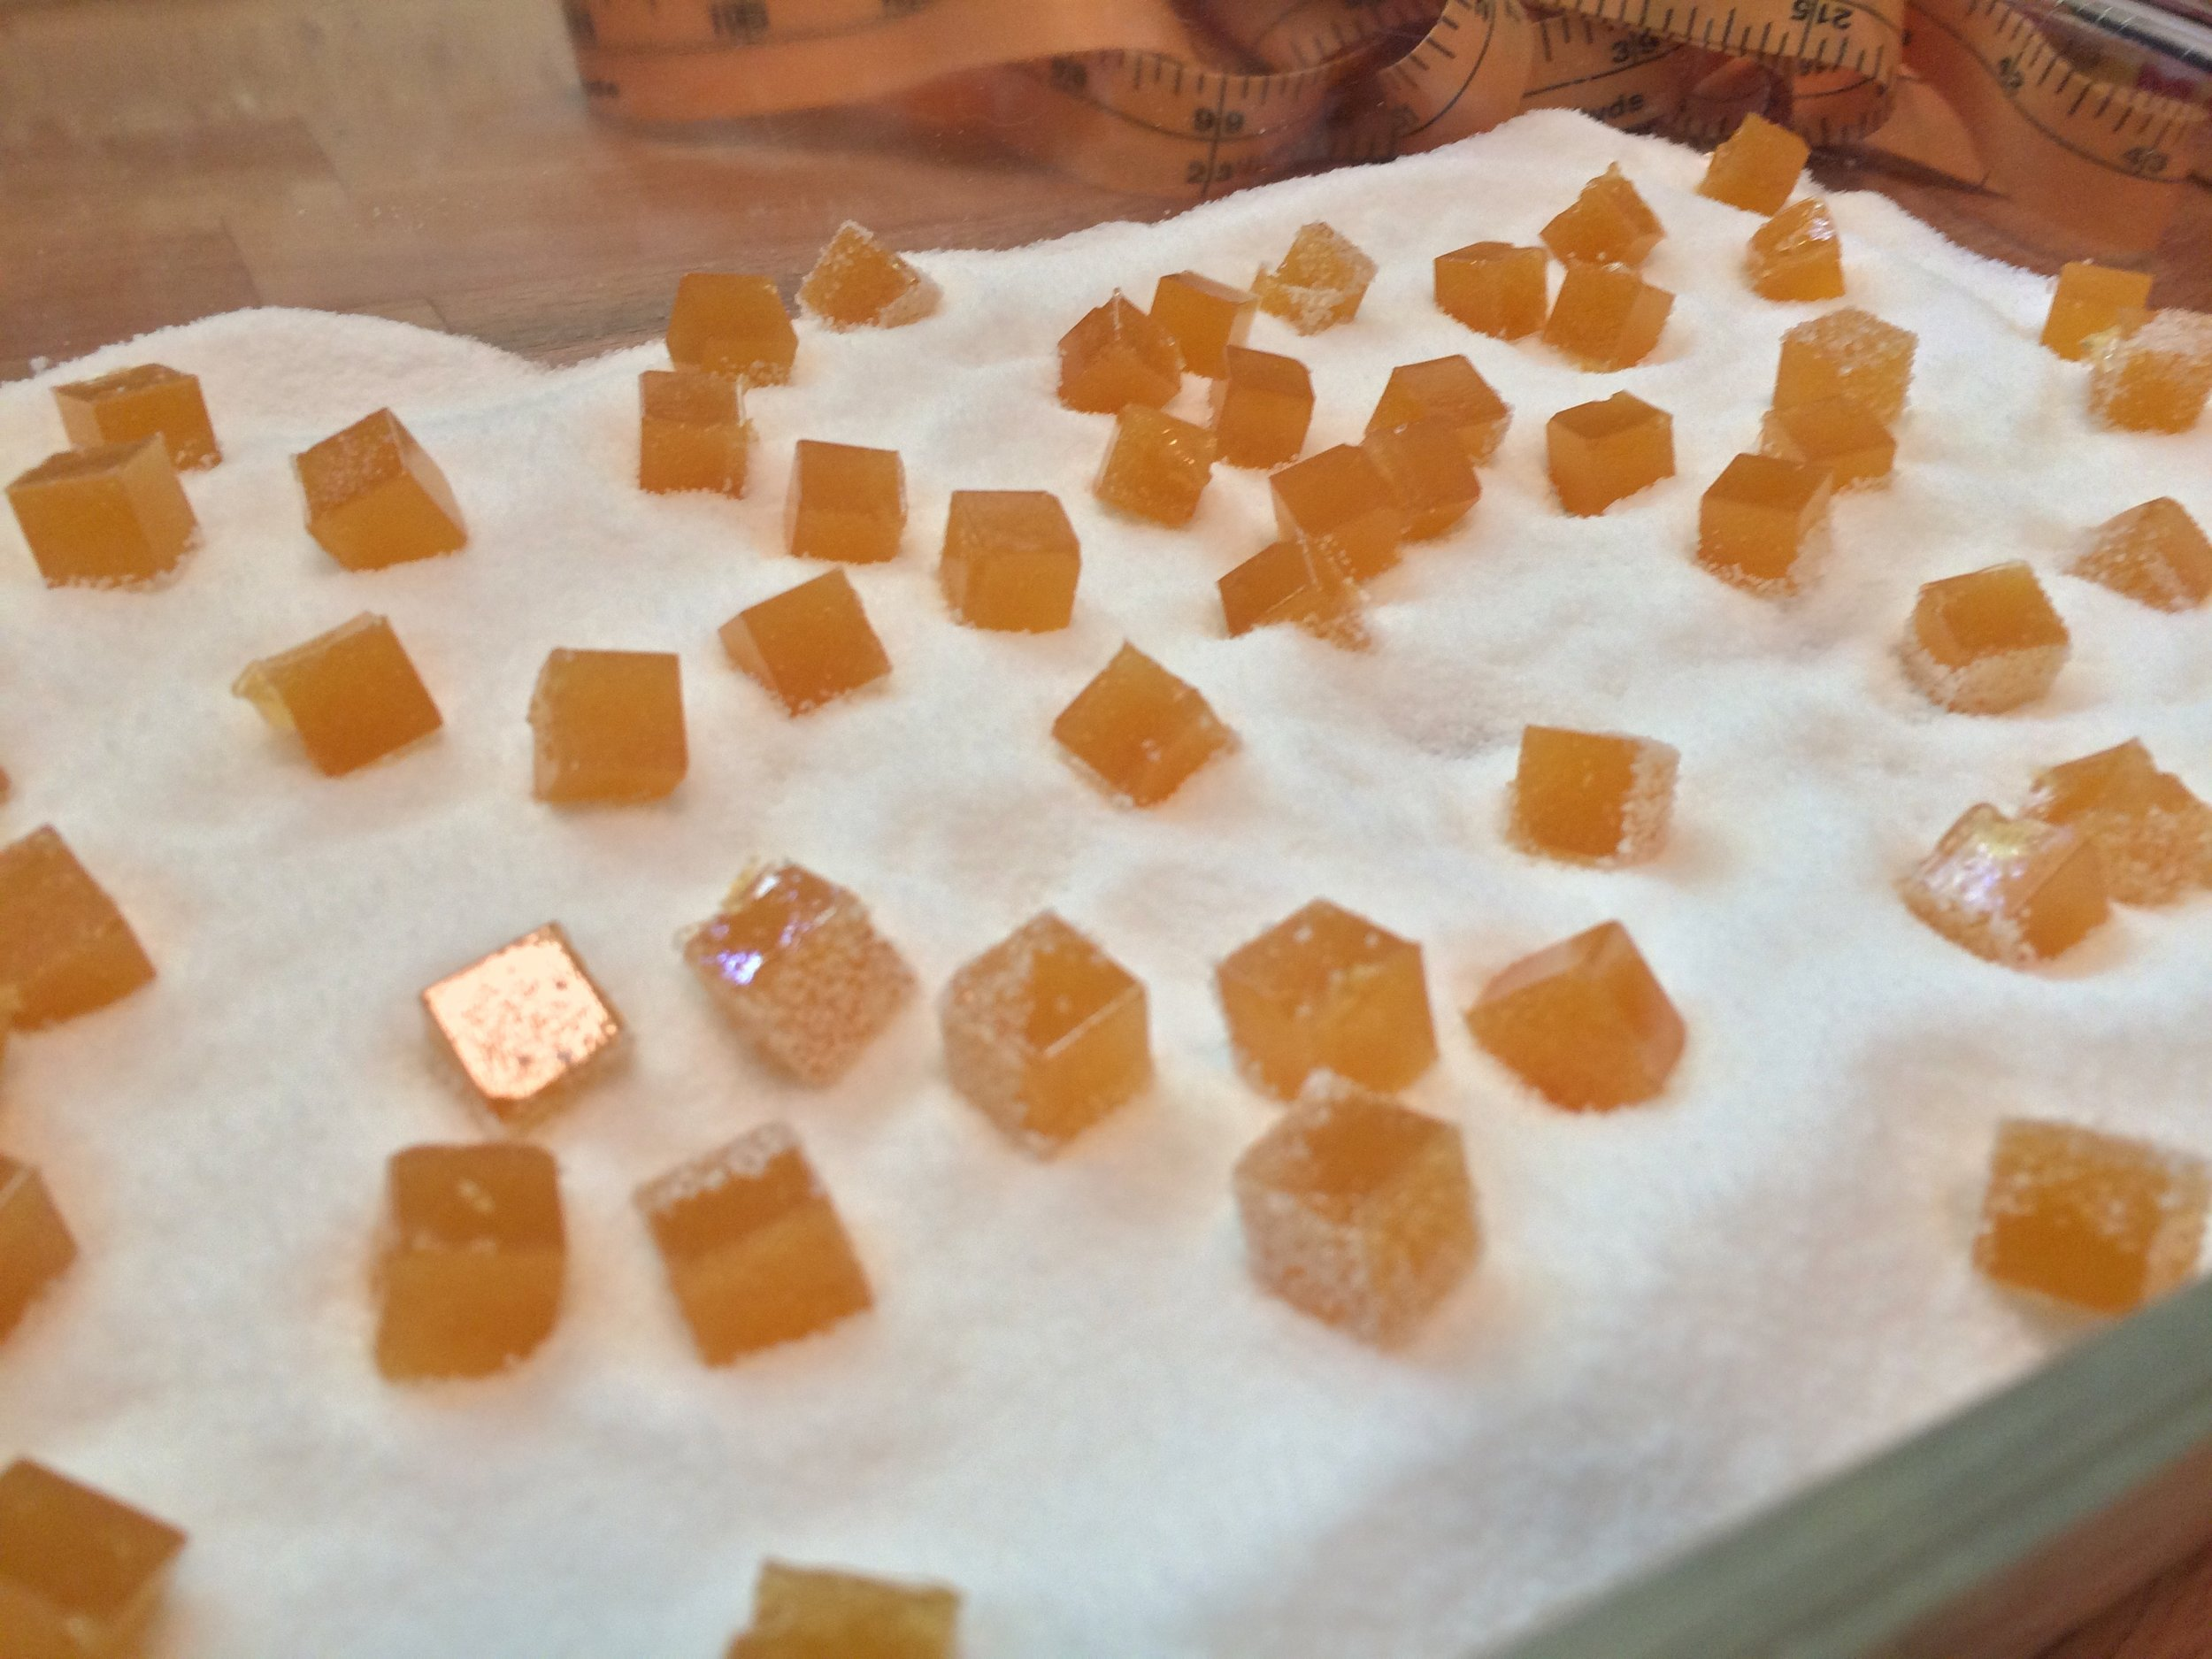 Arnold Palmer flavored jellies